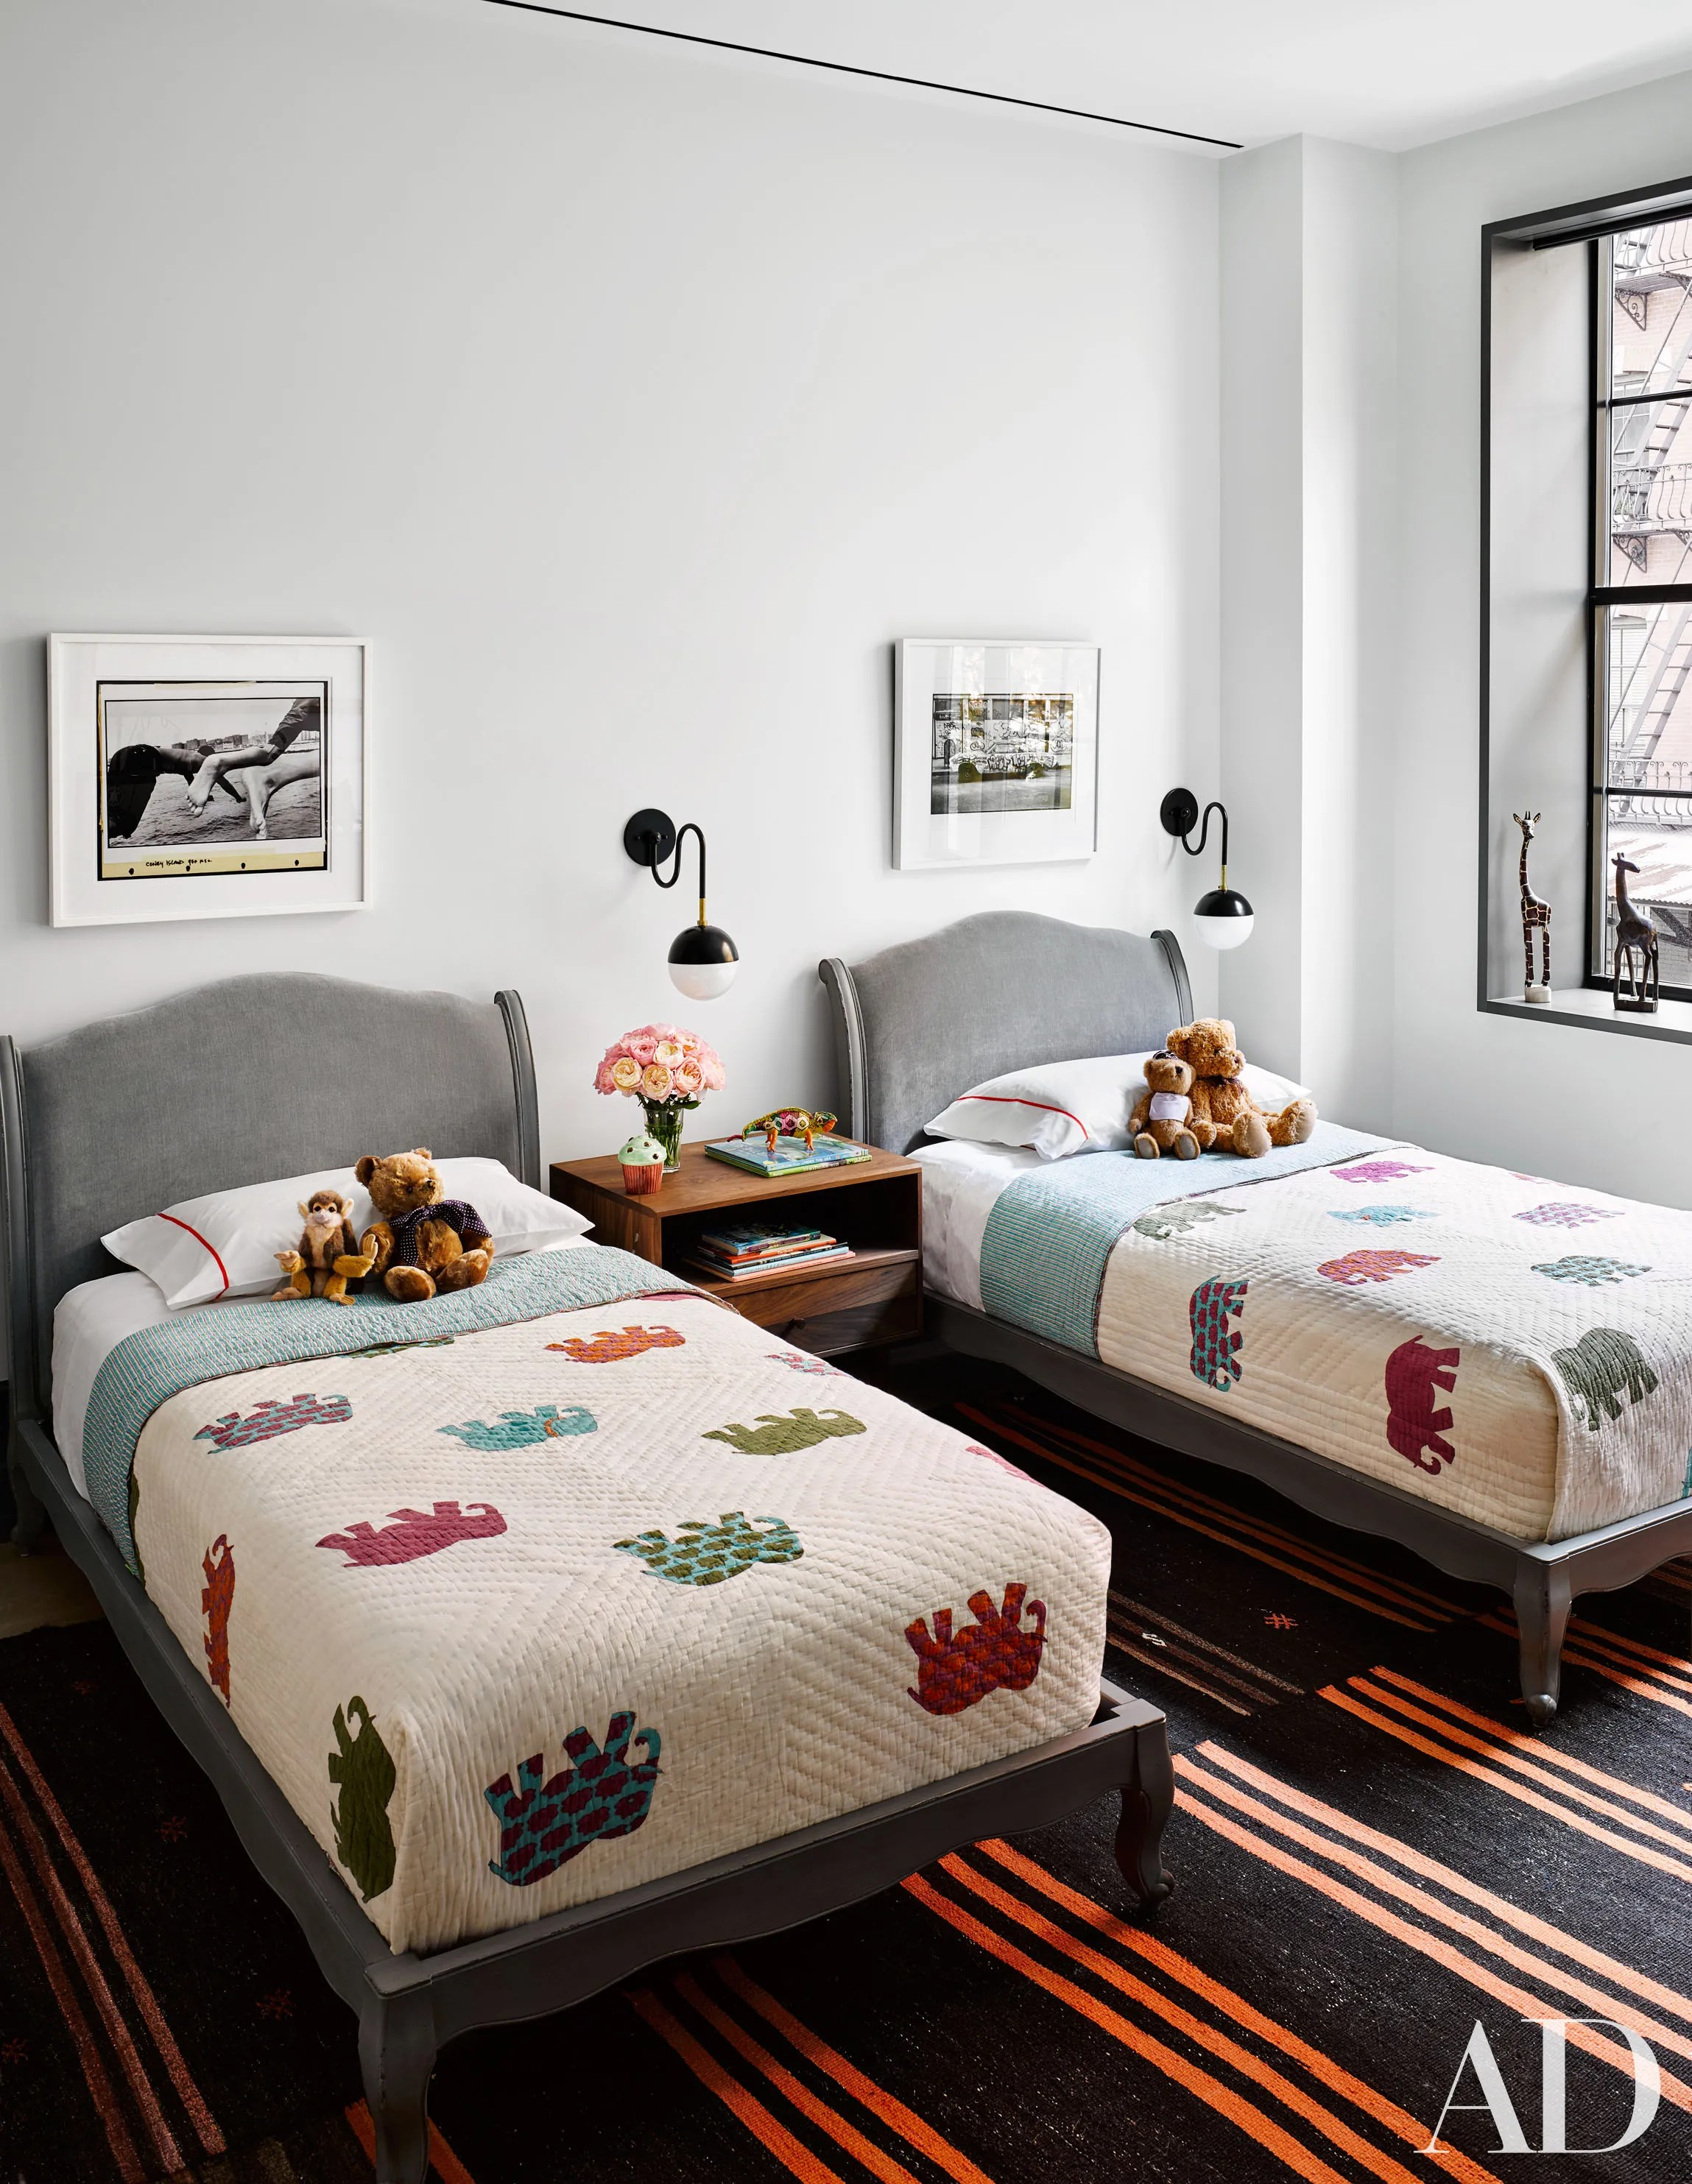 Little Boy Twin Bed Naomi Watts And Liev Schreibers Stunning New York City